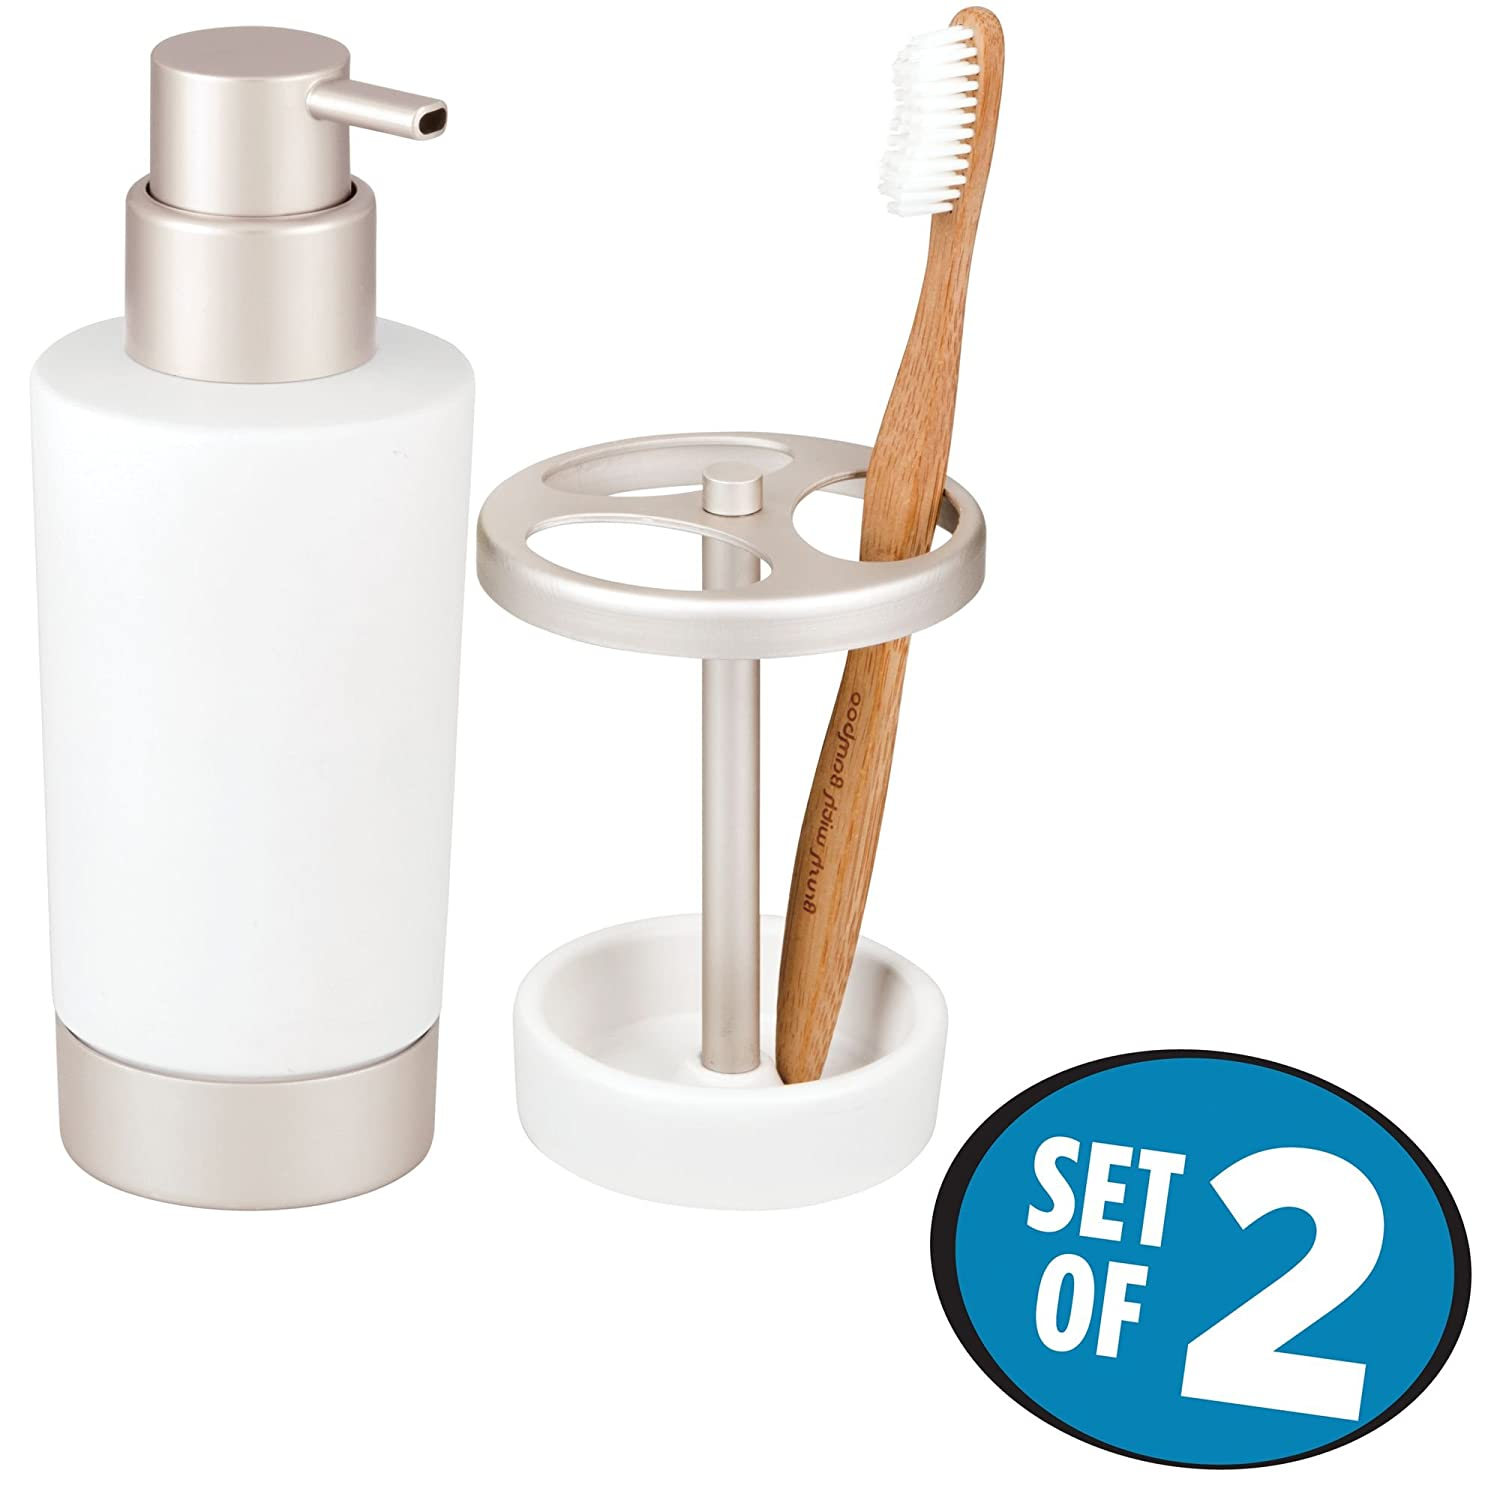 Includes Hand Soap Dispenser Pump Toothbrush Stand Rustproof Matte White//Satin MetroDecor Set of 2 mDesign Decorative Ceramic Bath Accessory Set for Bathroom Vanity Countertops and Sinks